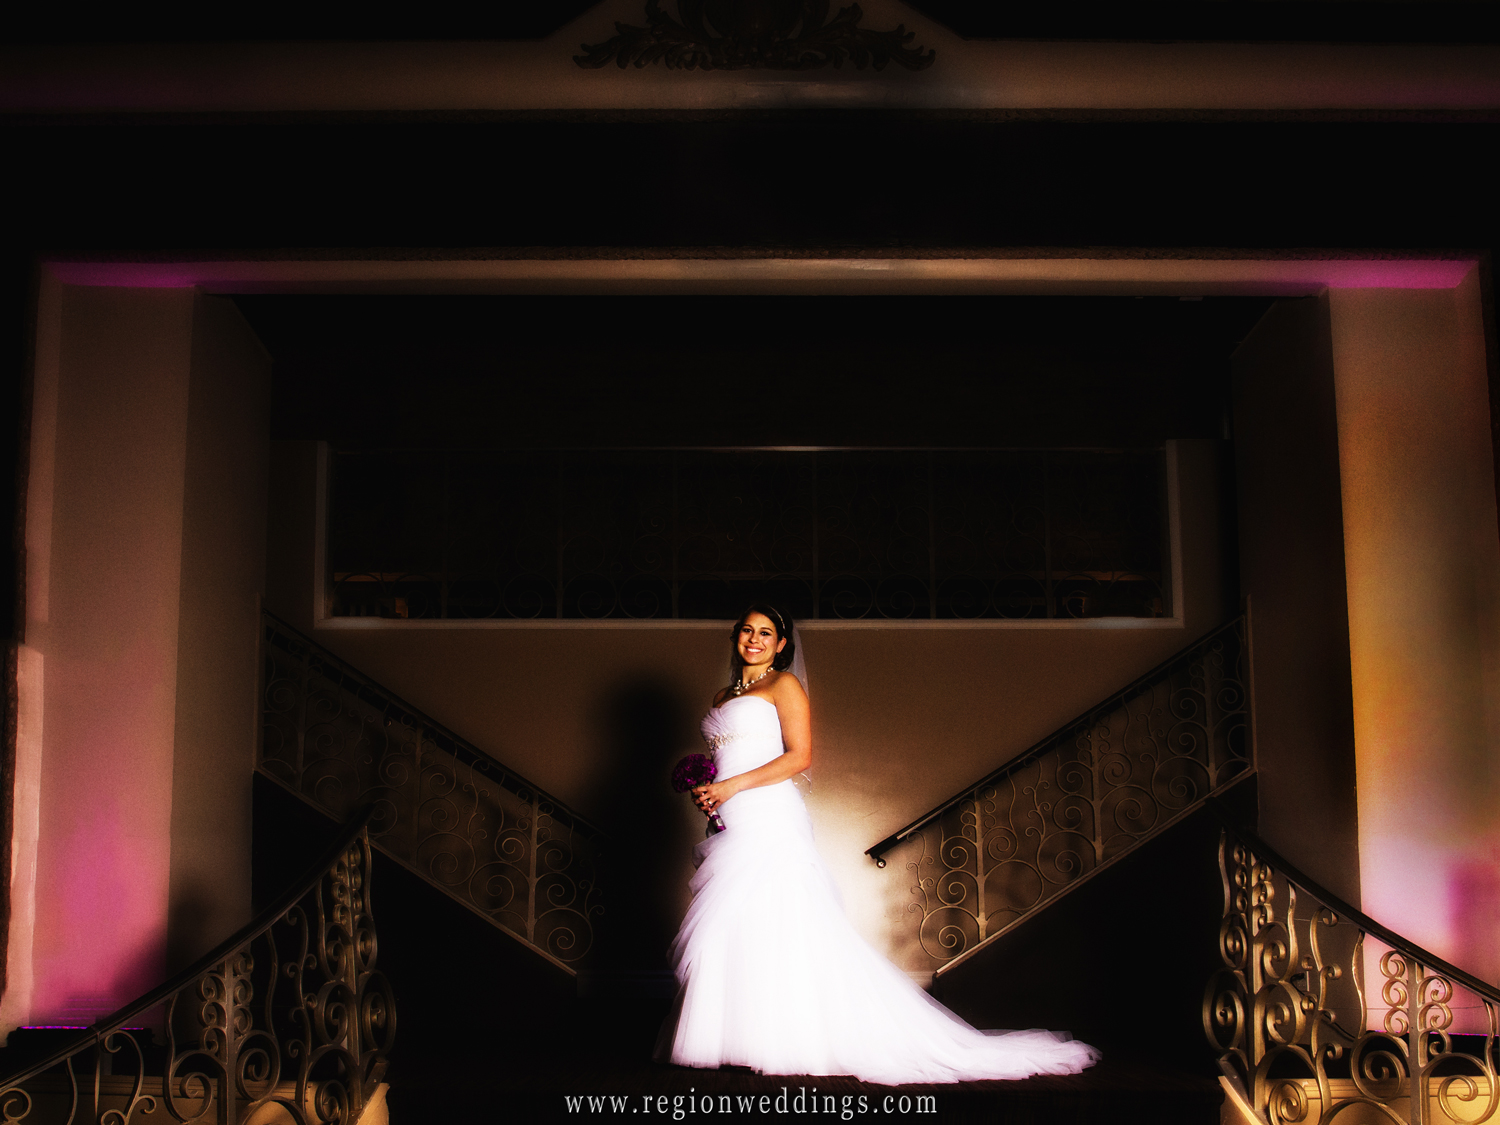 A bride displays her glowing smile soon after her Spring wedding at The Allure in Laporte, Indiana.